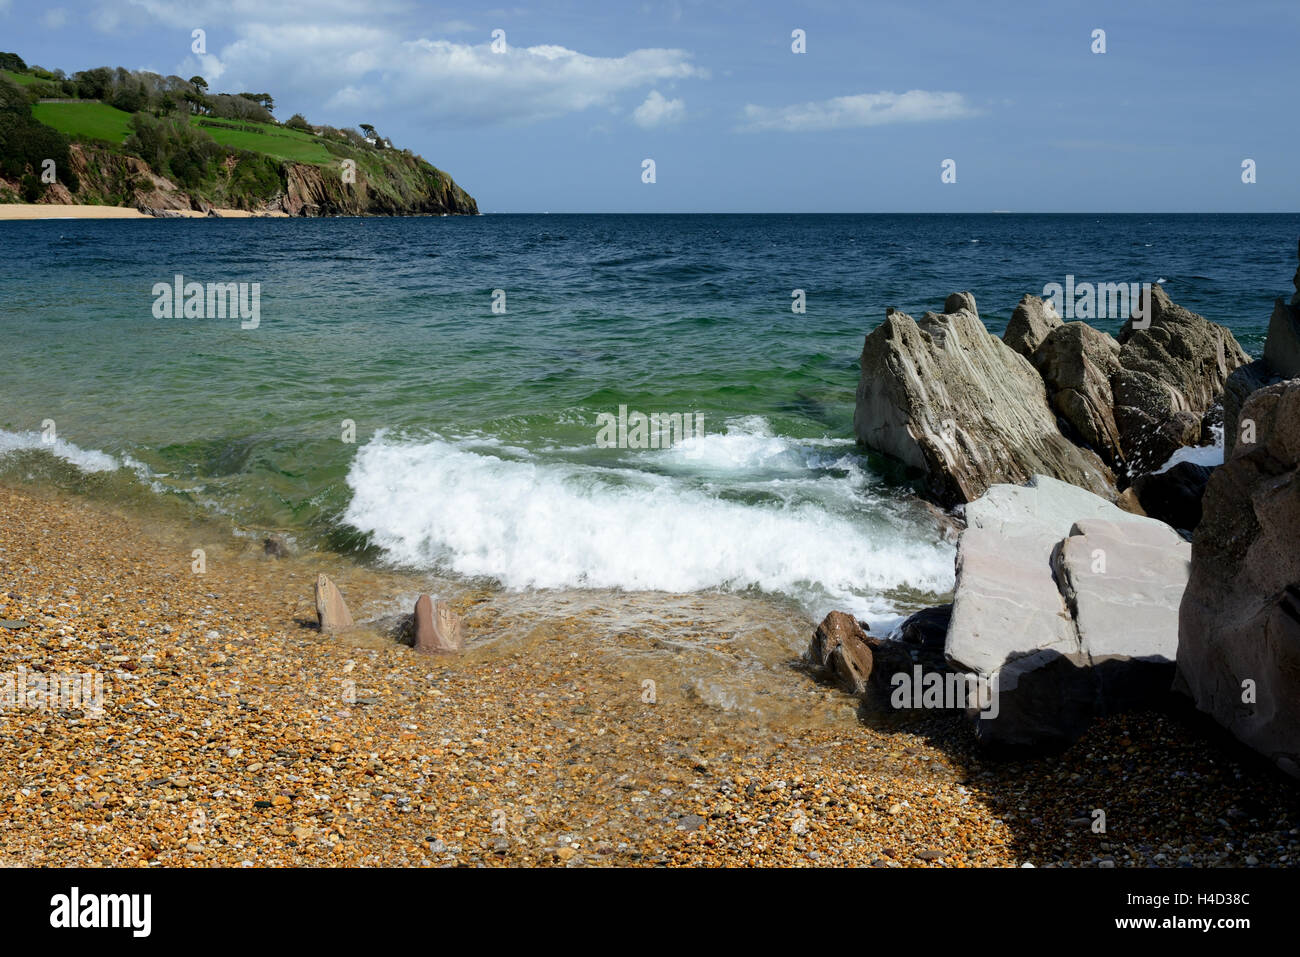 Jagged rocks at the water's edge at Blackpool Sands, South Devon. - Stock Image